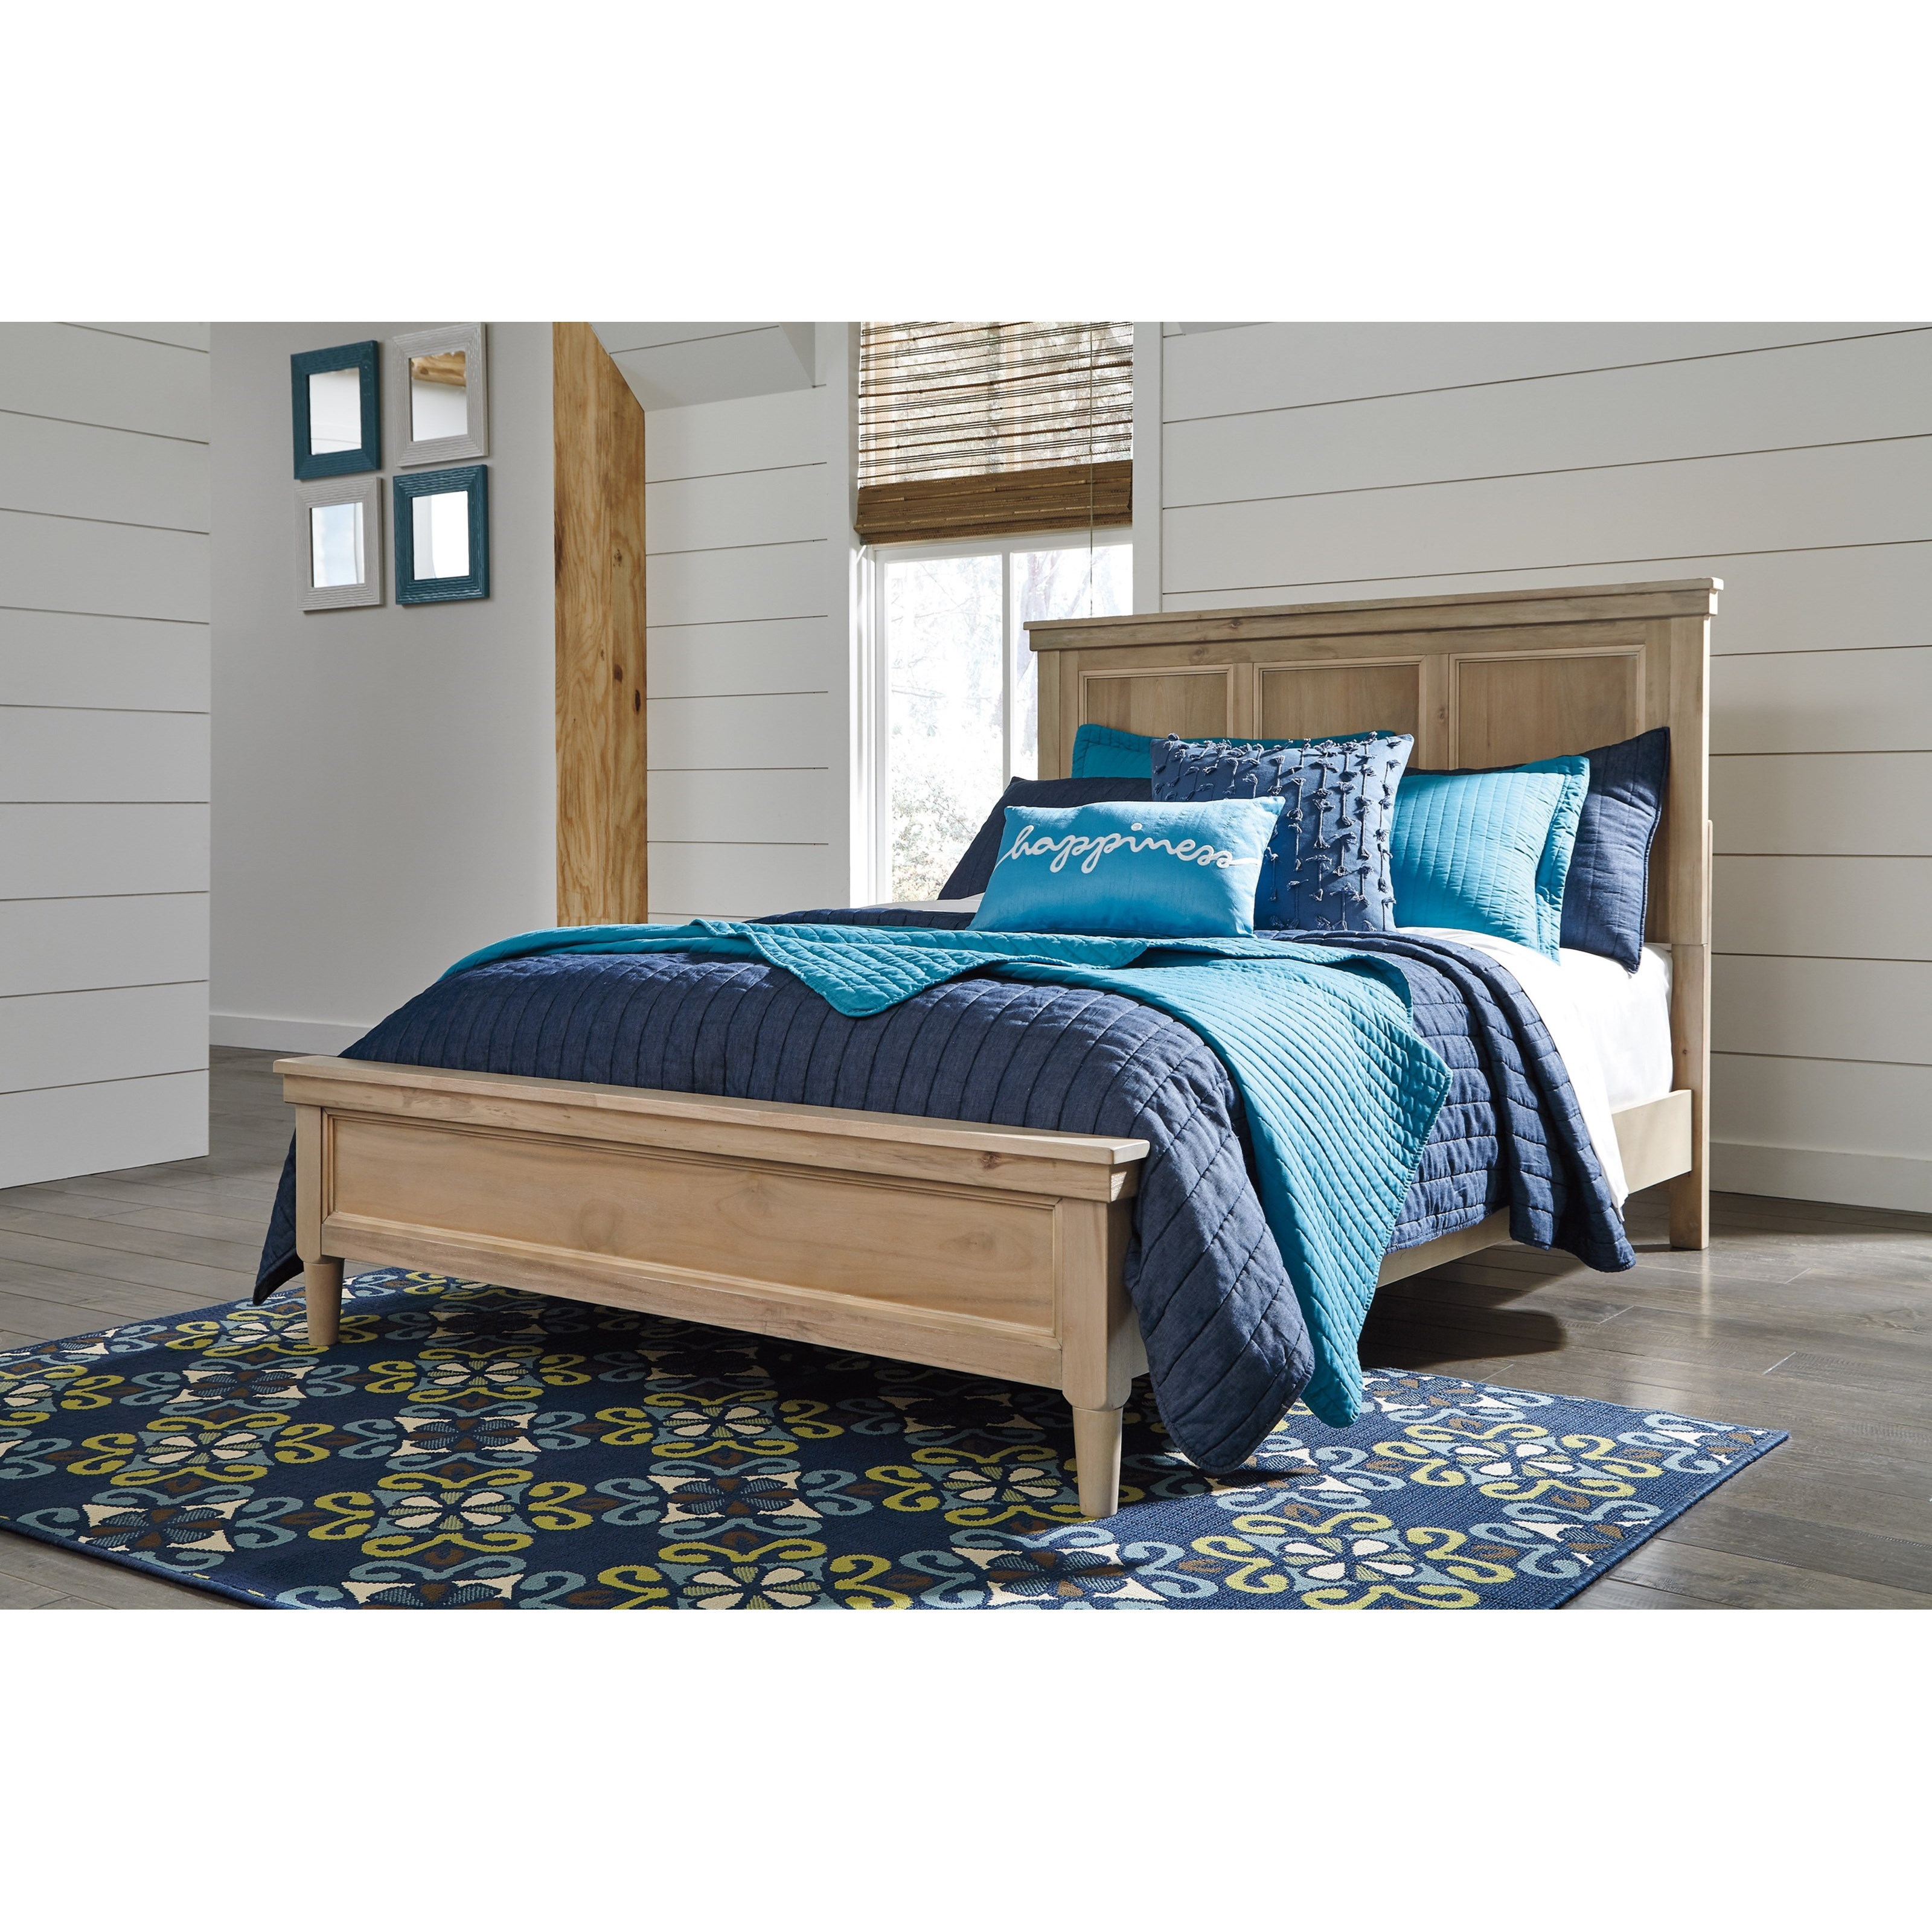 Signature Design By Ashley Klasholm Contemporary Full Bed With Low Profile Footboard John V